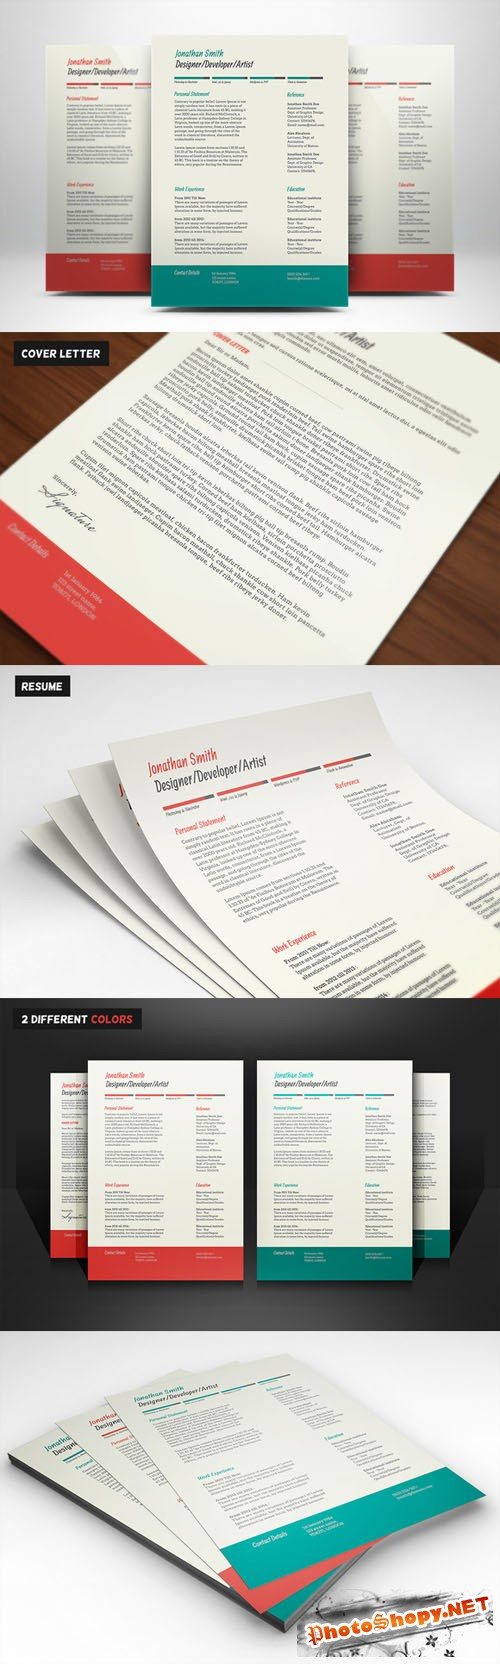 Resume & Cover Letter PSD Template